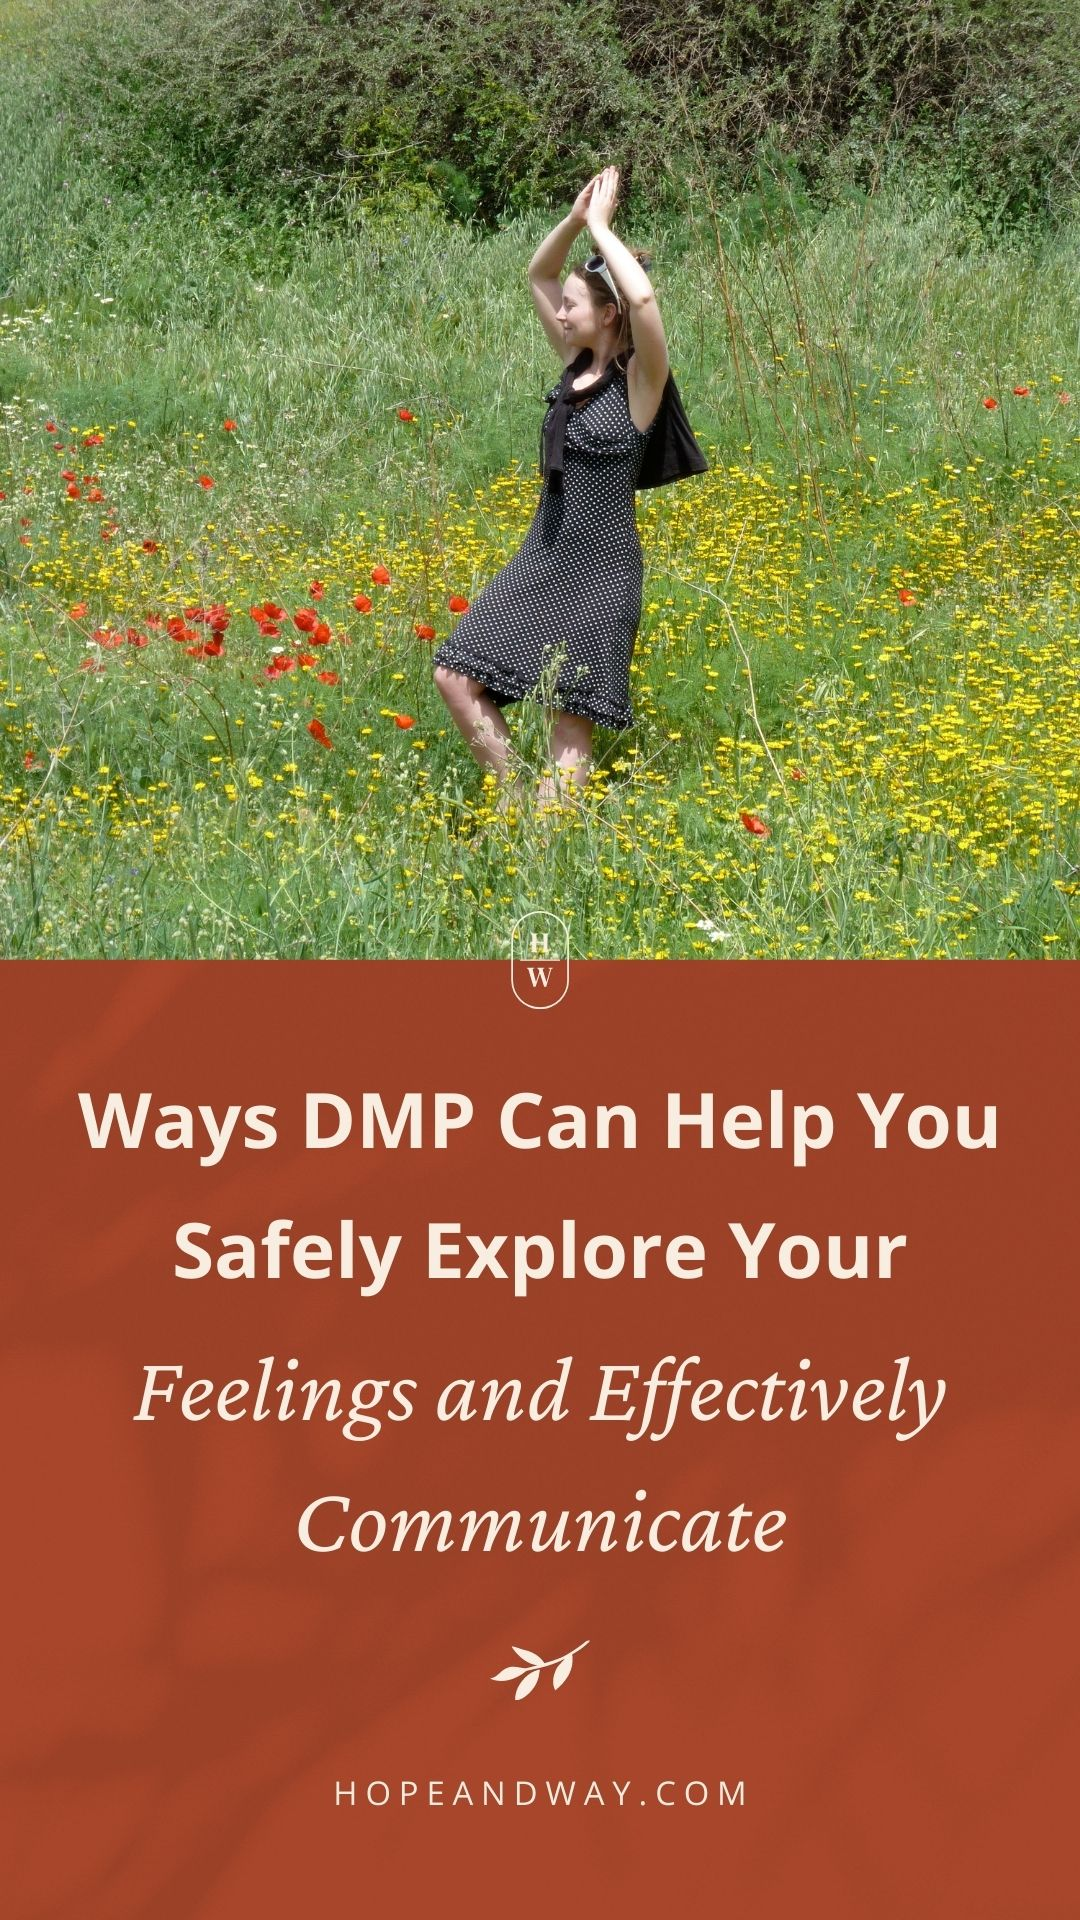 Ways dance movement psychotherapy (DMP) Can Help You Safely Explore Your Feelings and Effectively Communicate – Interview with Mhari Baxter